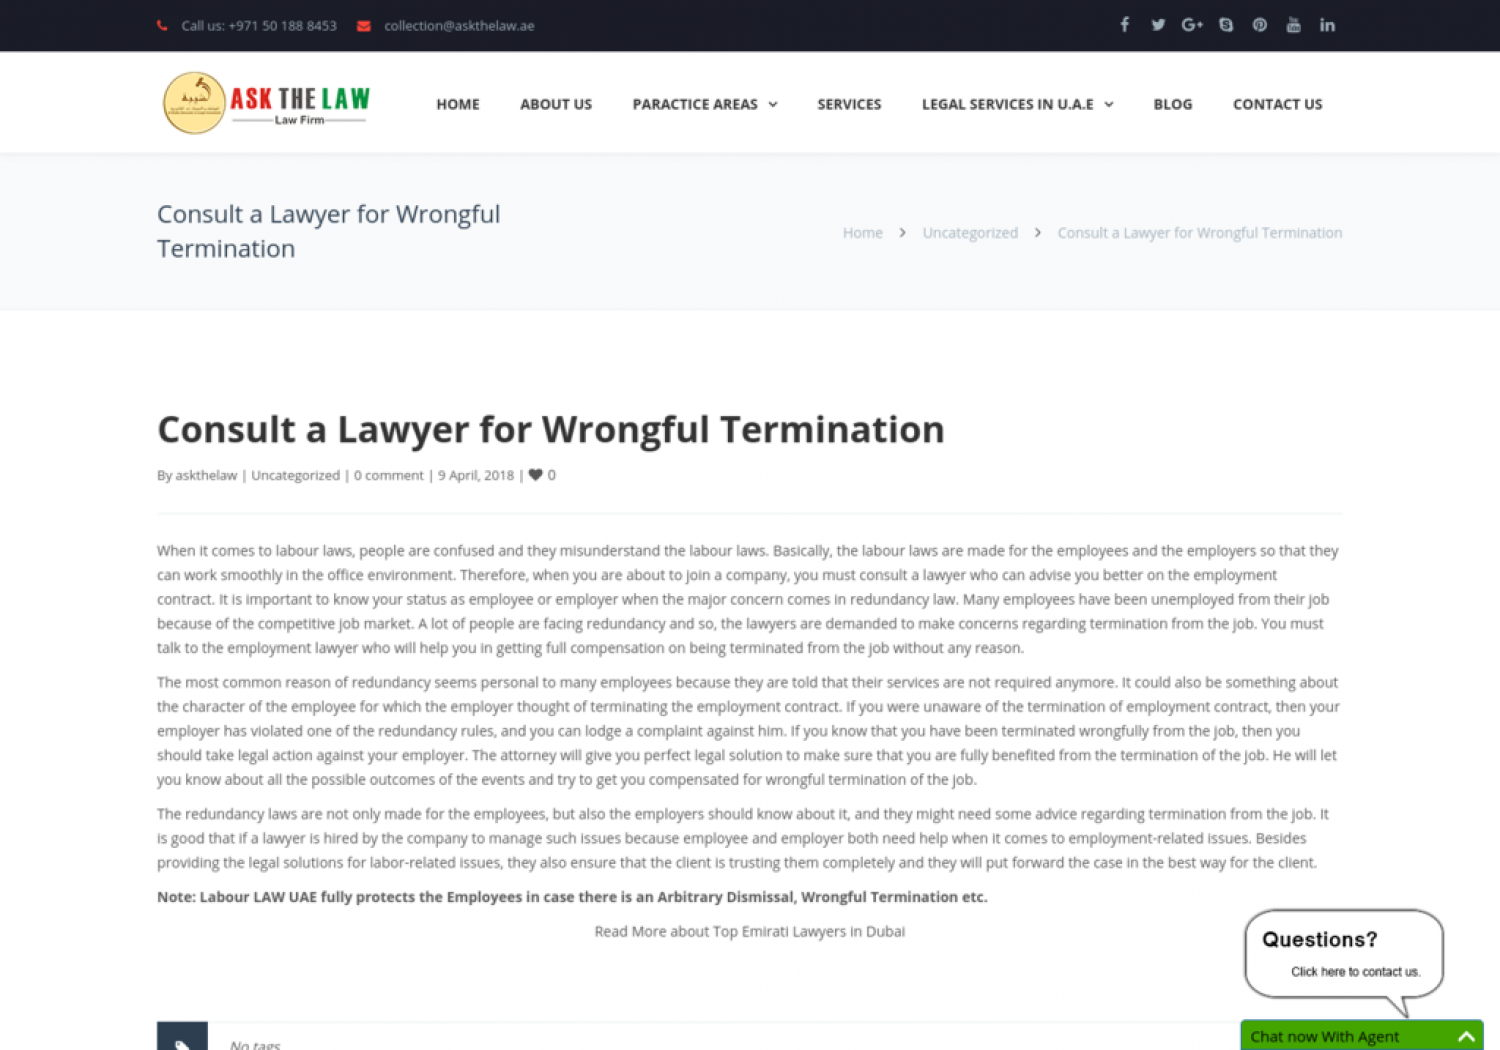 Consult a Lawyer for Wrongful Termination Infographic